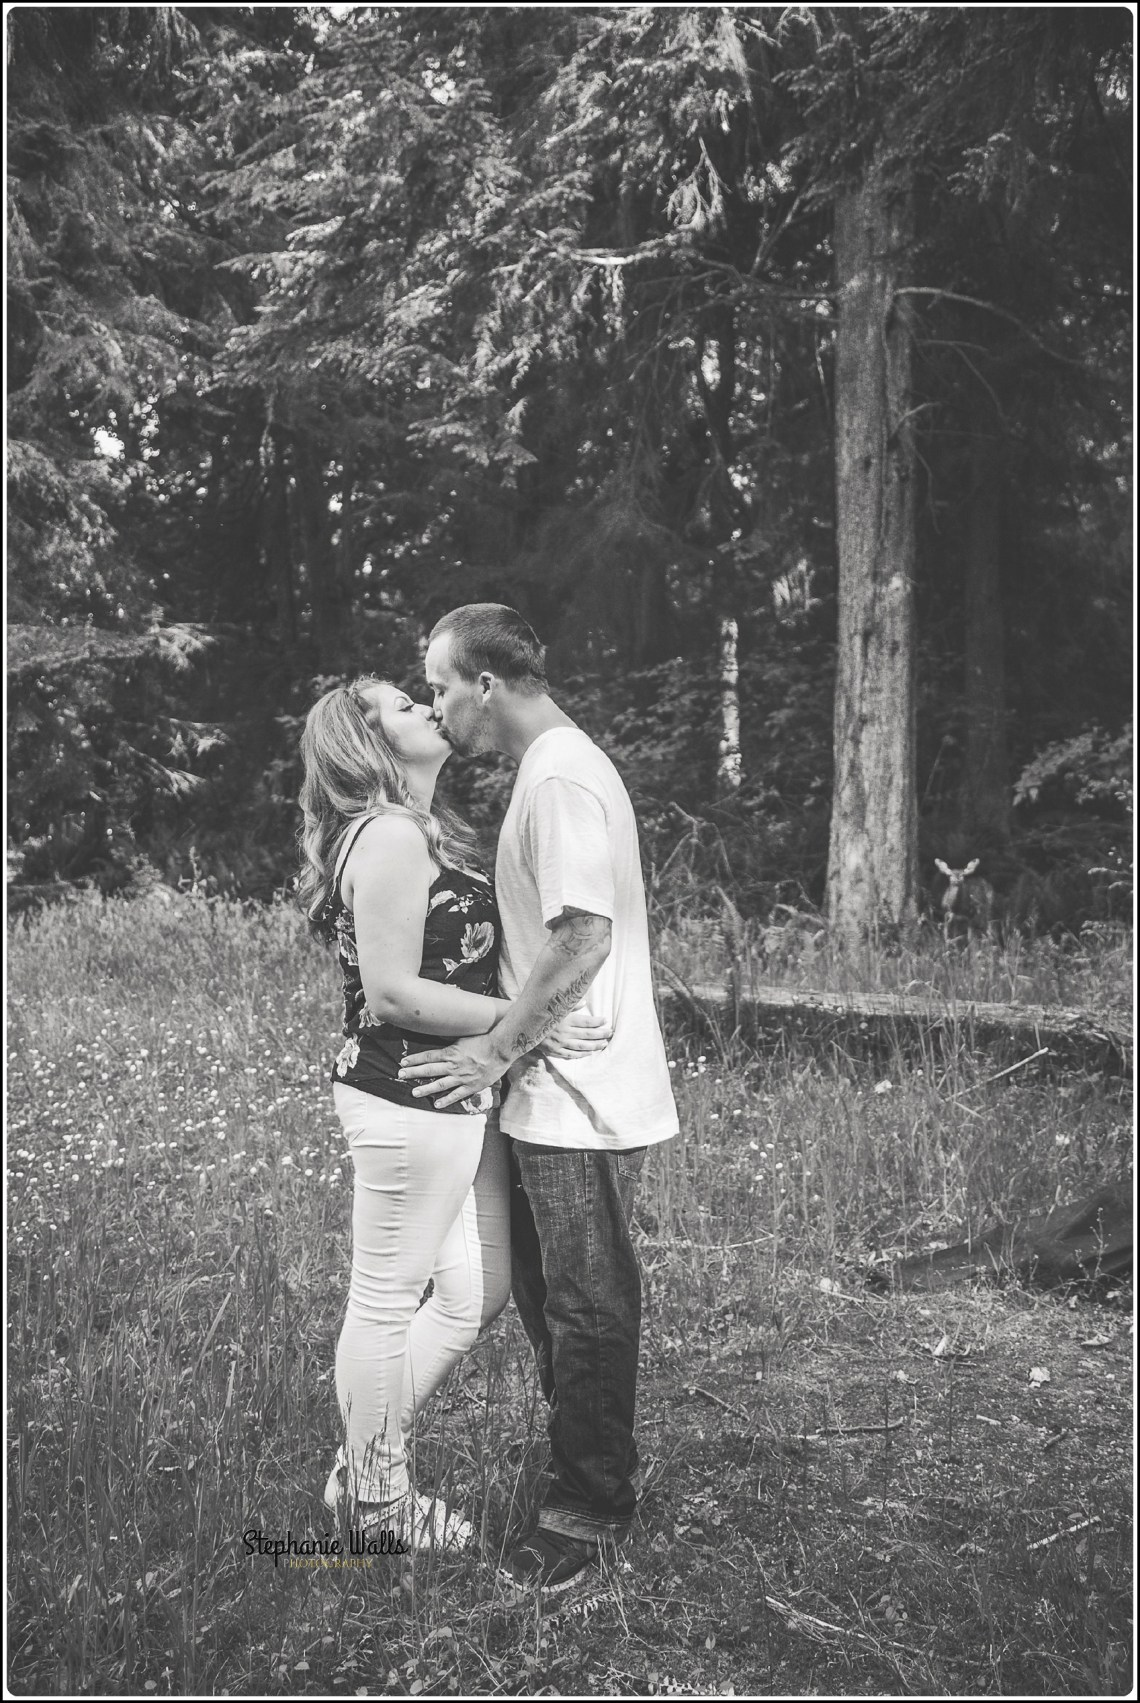 marissa dustin008 Point Defiance Park Engagement with Marissa and Dustin